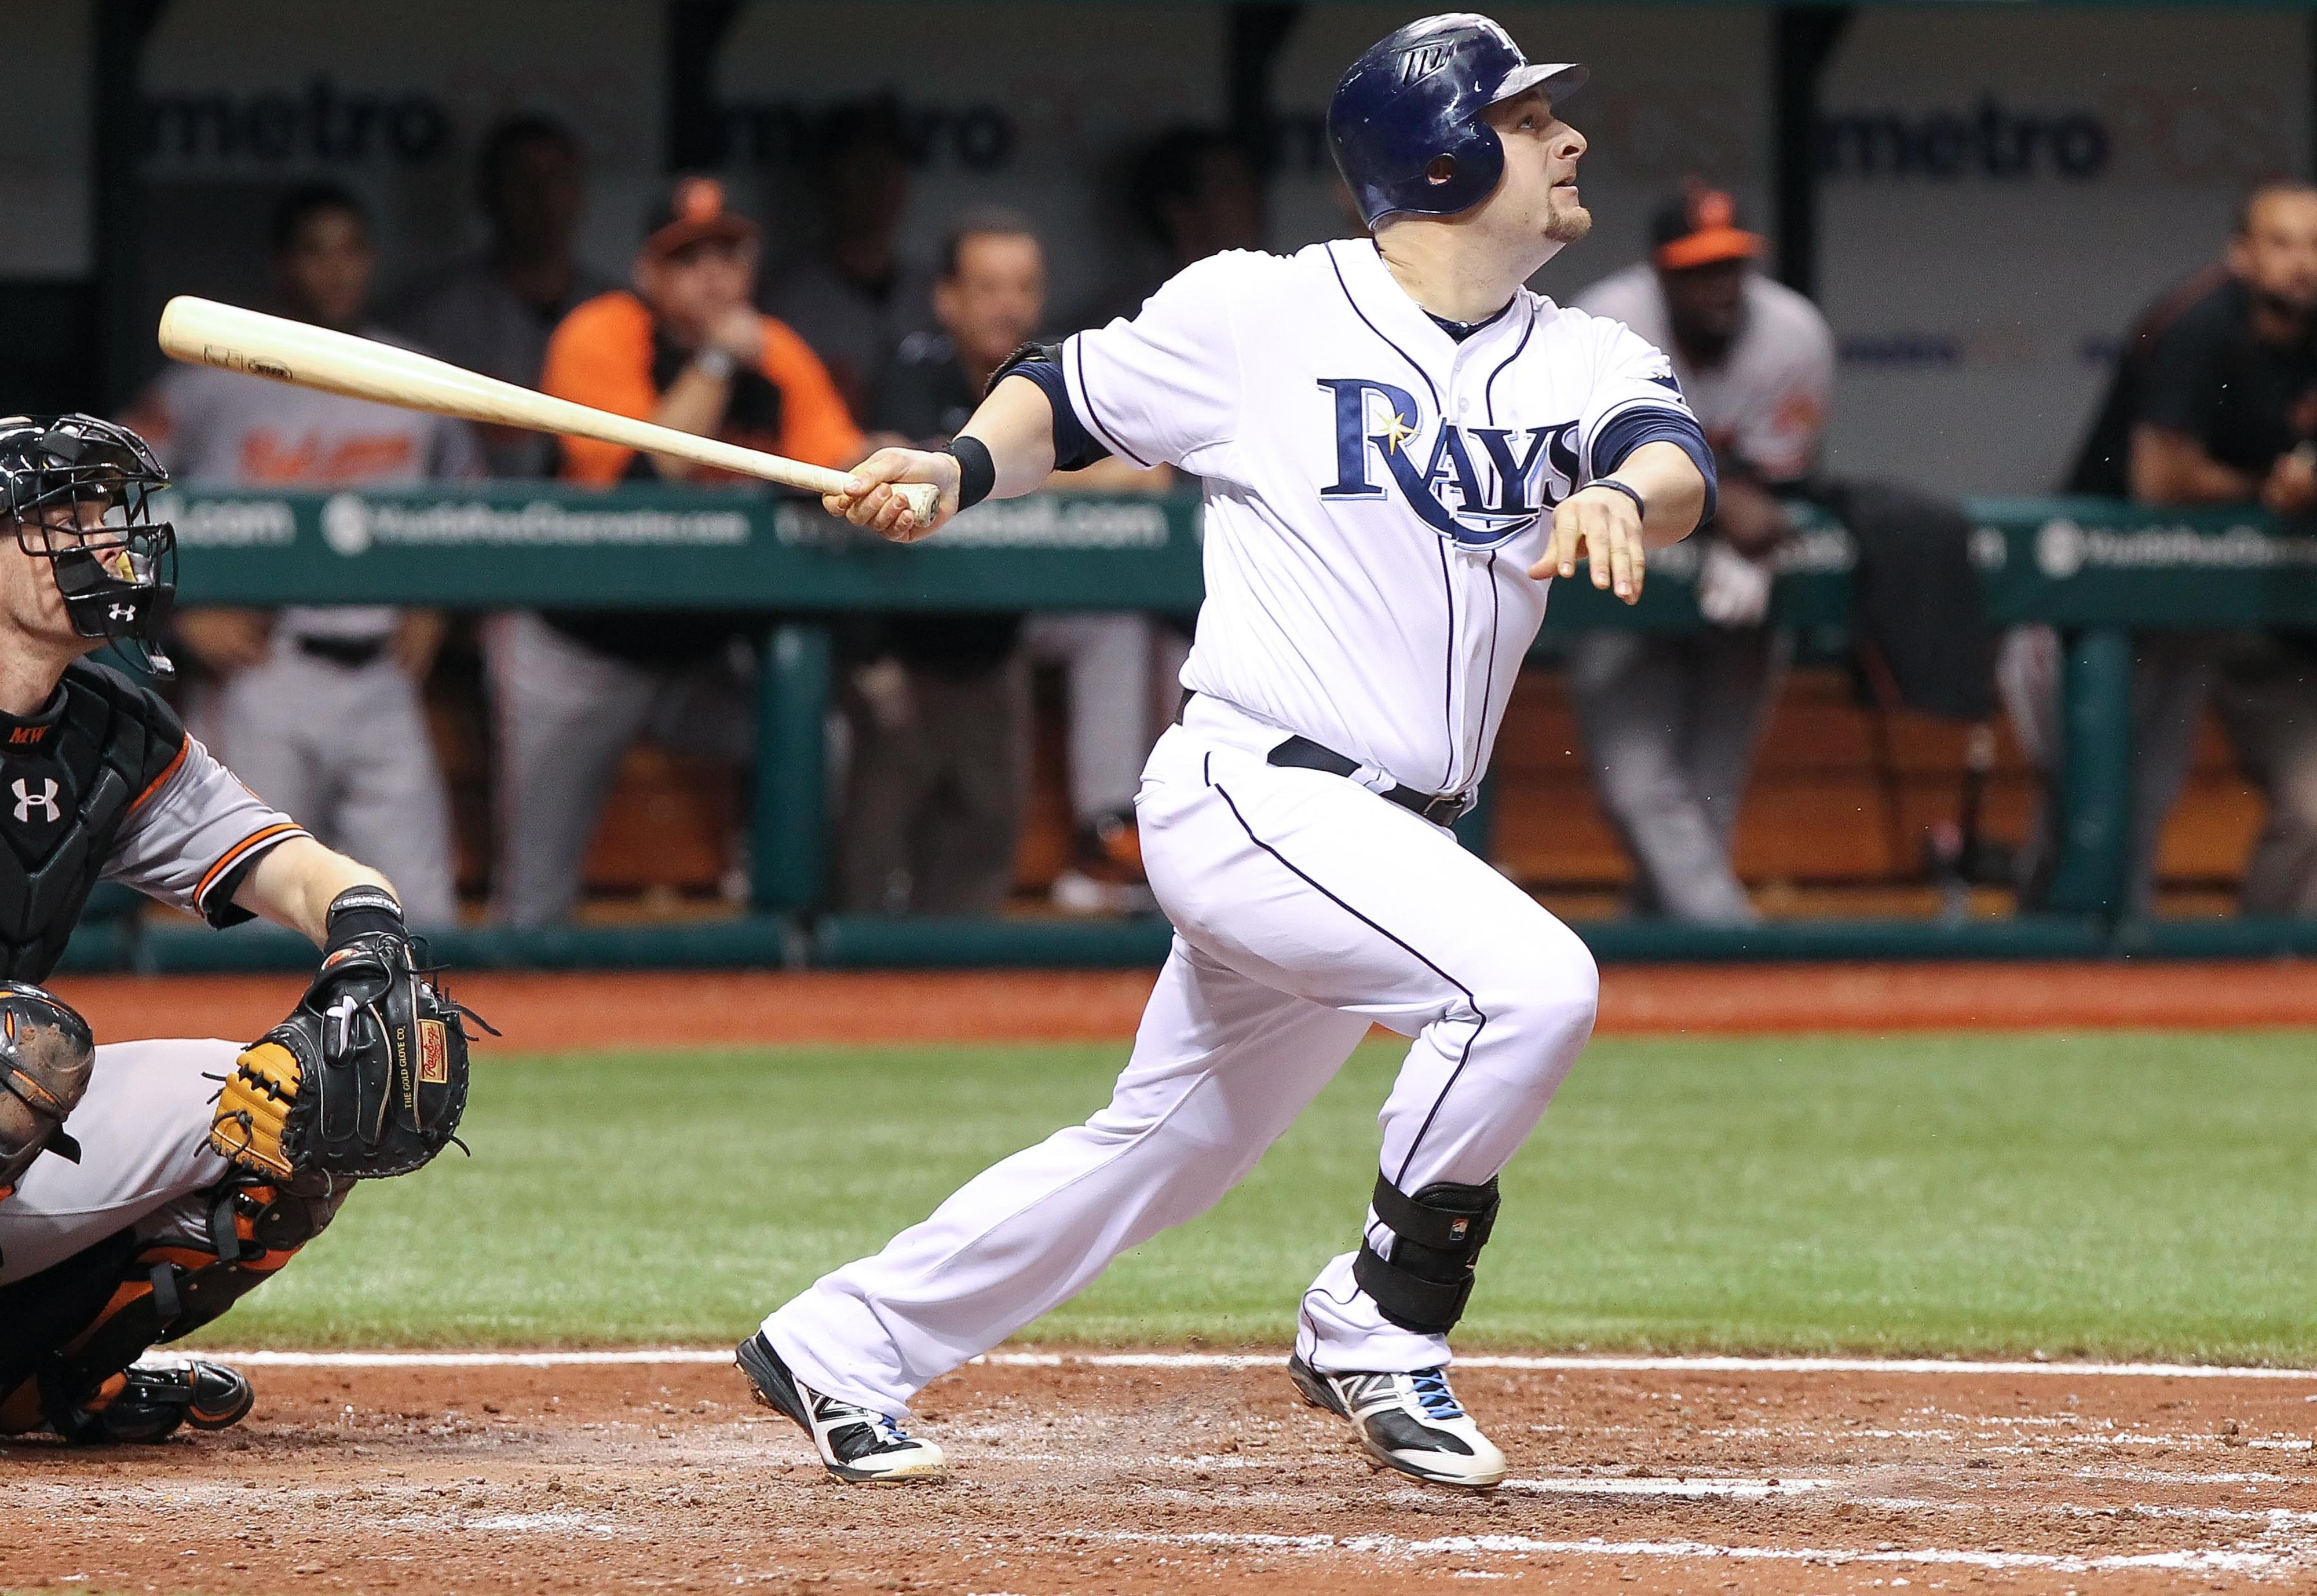 Is that the swing of a 1,000 foot home run?  Could be.